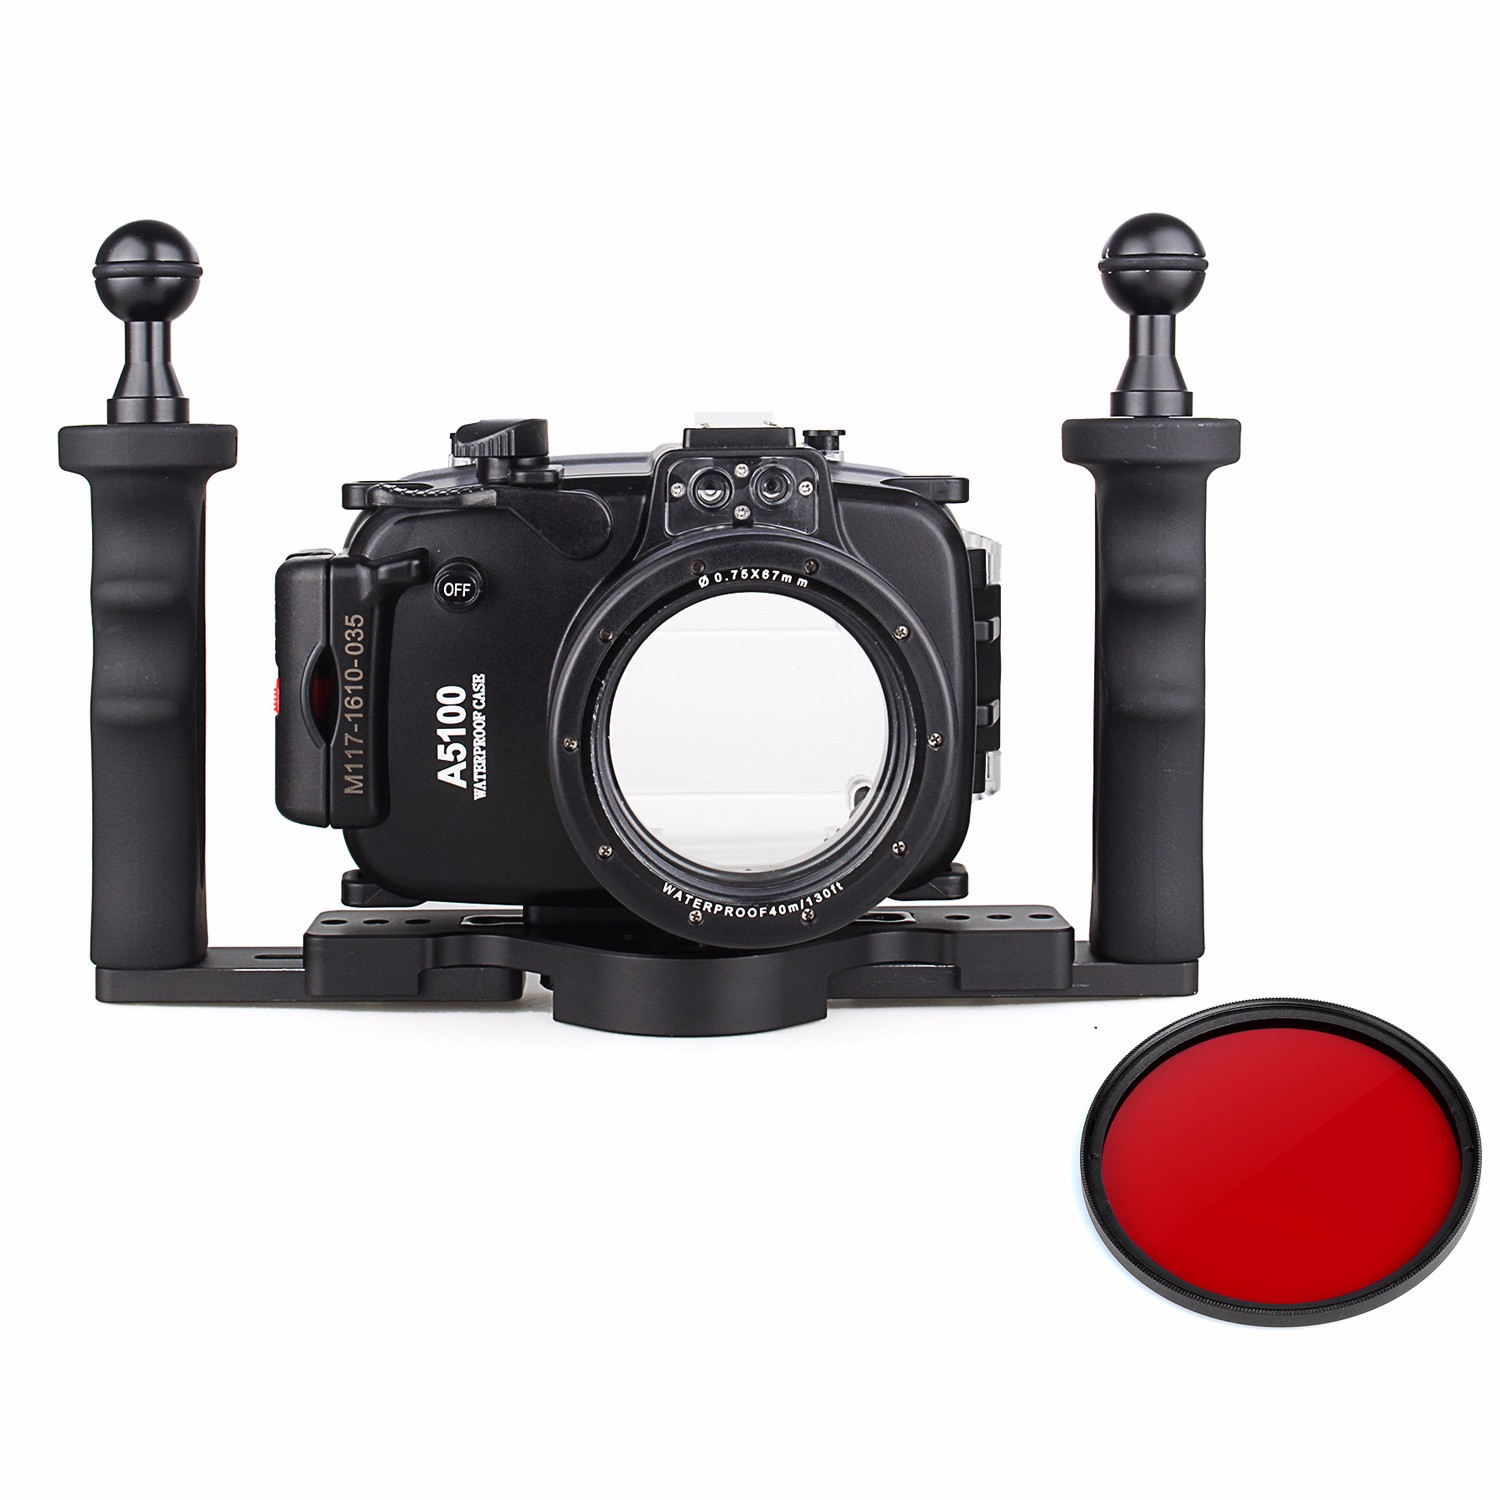 40m 130ft Waterproof Underwater Camera Housing Case Bag for Sony A5100 16-50mm Lens + Two Hands Aluminium Tray + 67mm Red Filter 40m 130ft waterproof underwater camera diving housing case aluminum handle for sony a7 a7r a7s 28 70mm lens camera